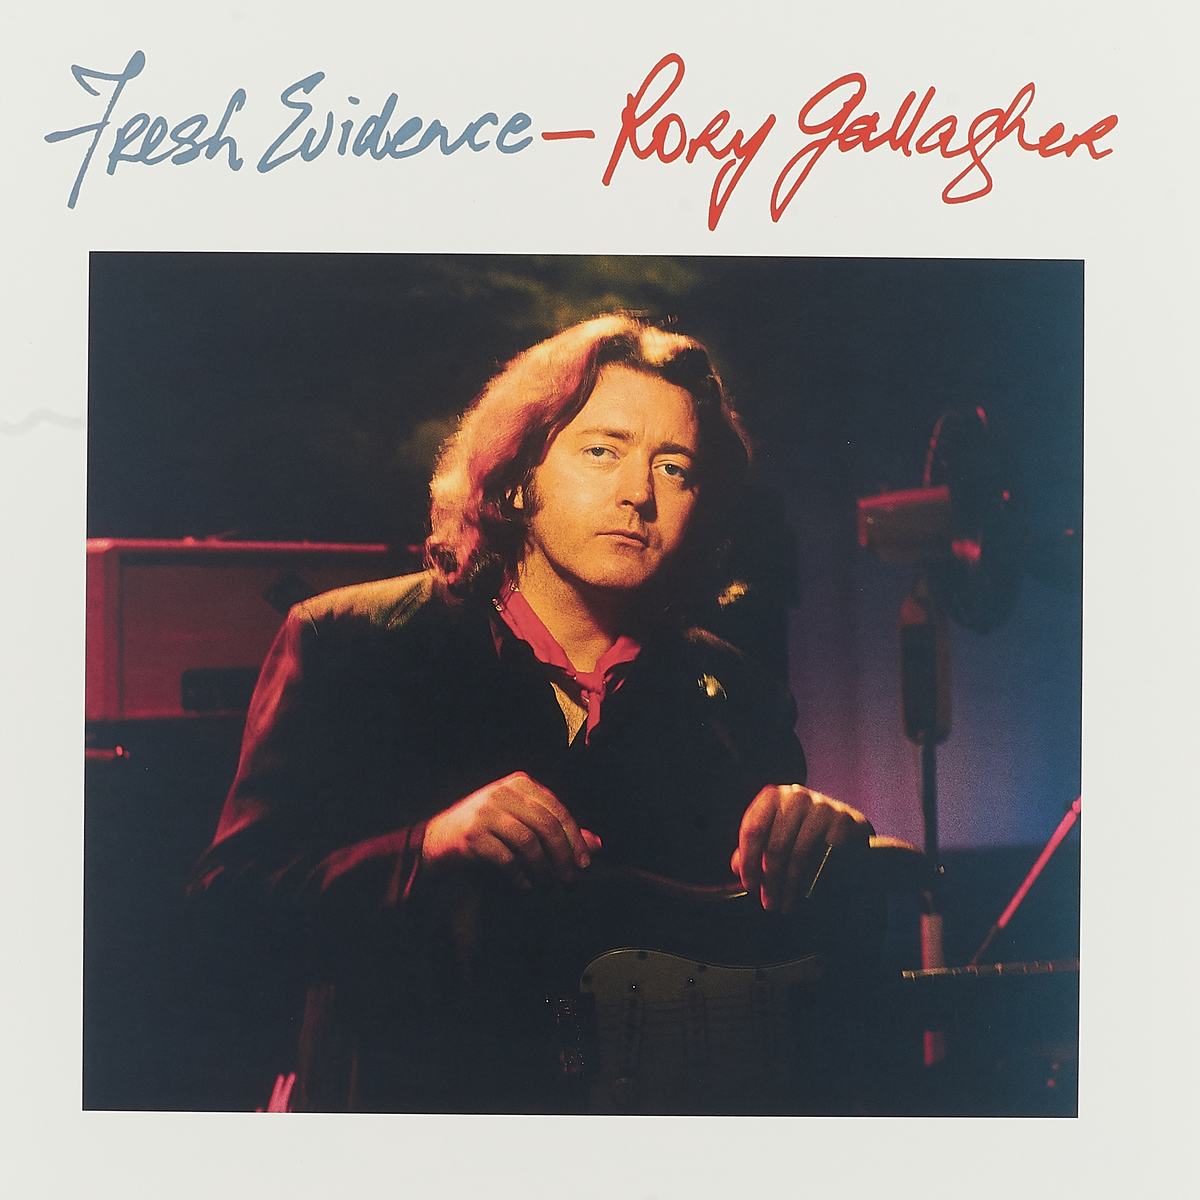 Рори Галлахер Rory Gallagher. Fresh Evidence (LP) рори галлахер gallagher rory live in europe hq lp